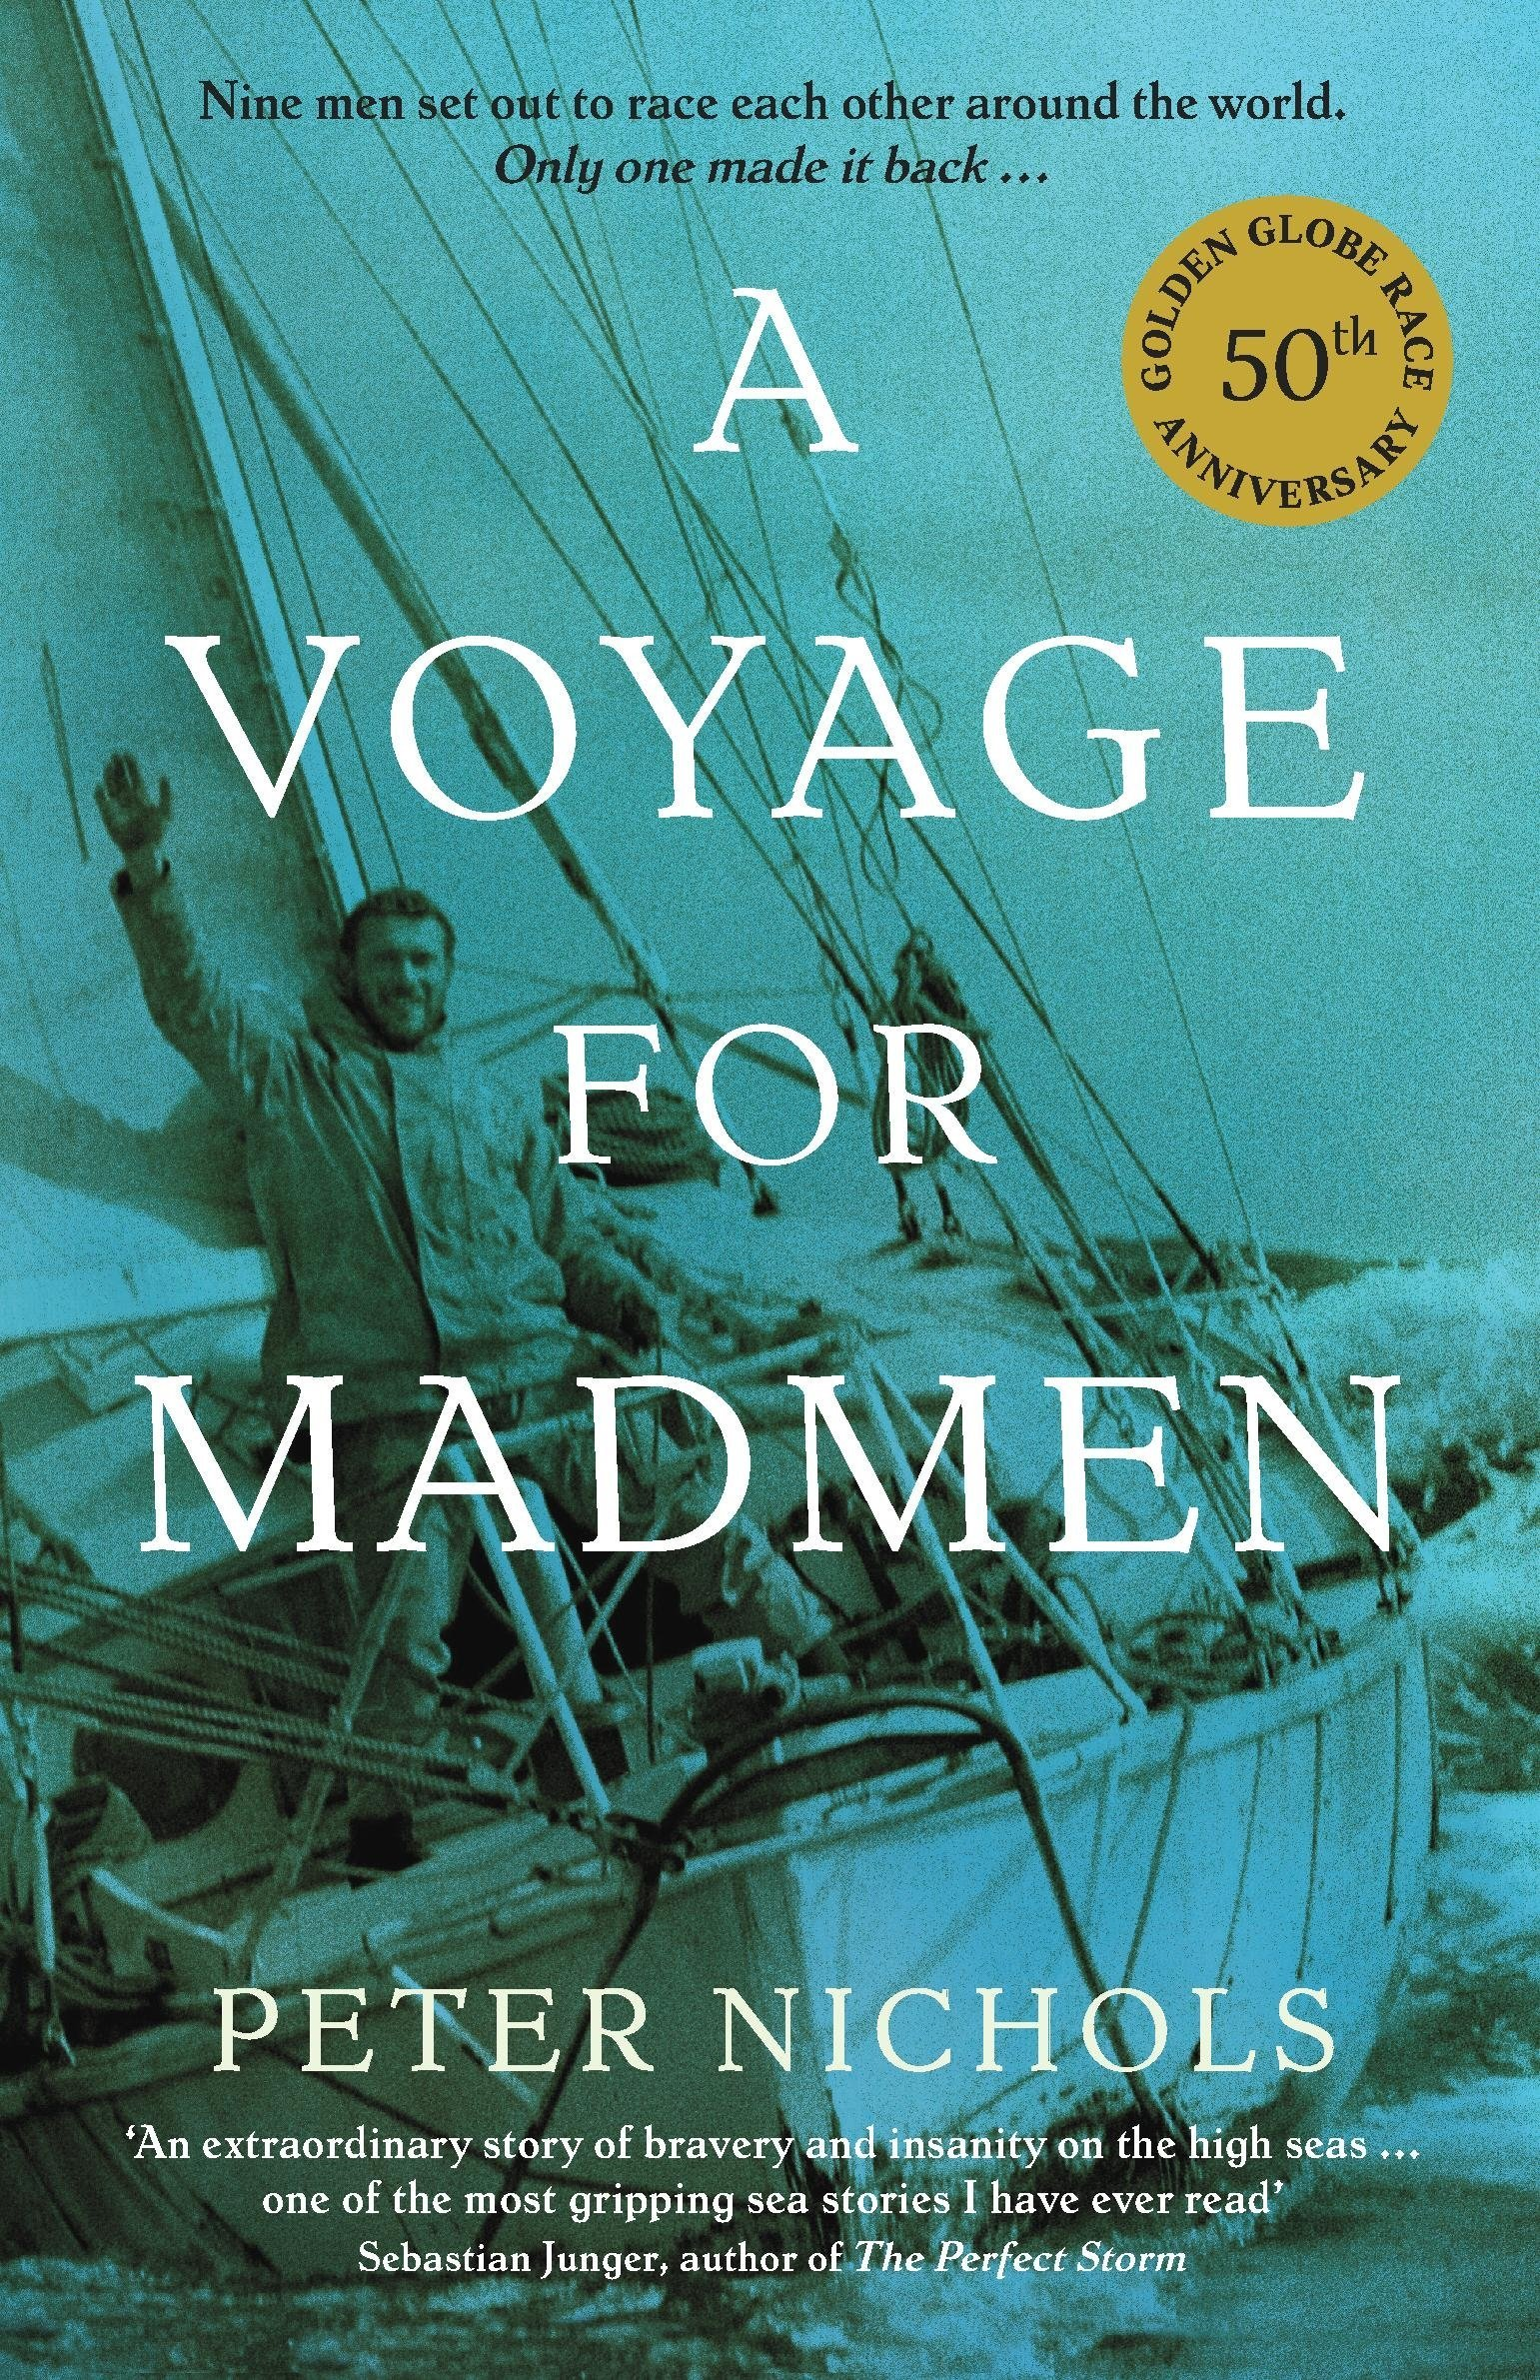 A Voyage For Madmen  Nine Men Set Out To Race Each Other Around The World. Only One Made It Back ...